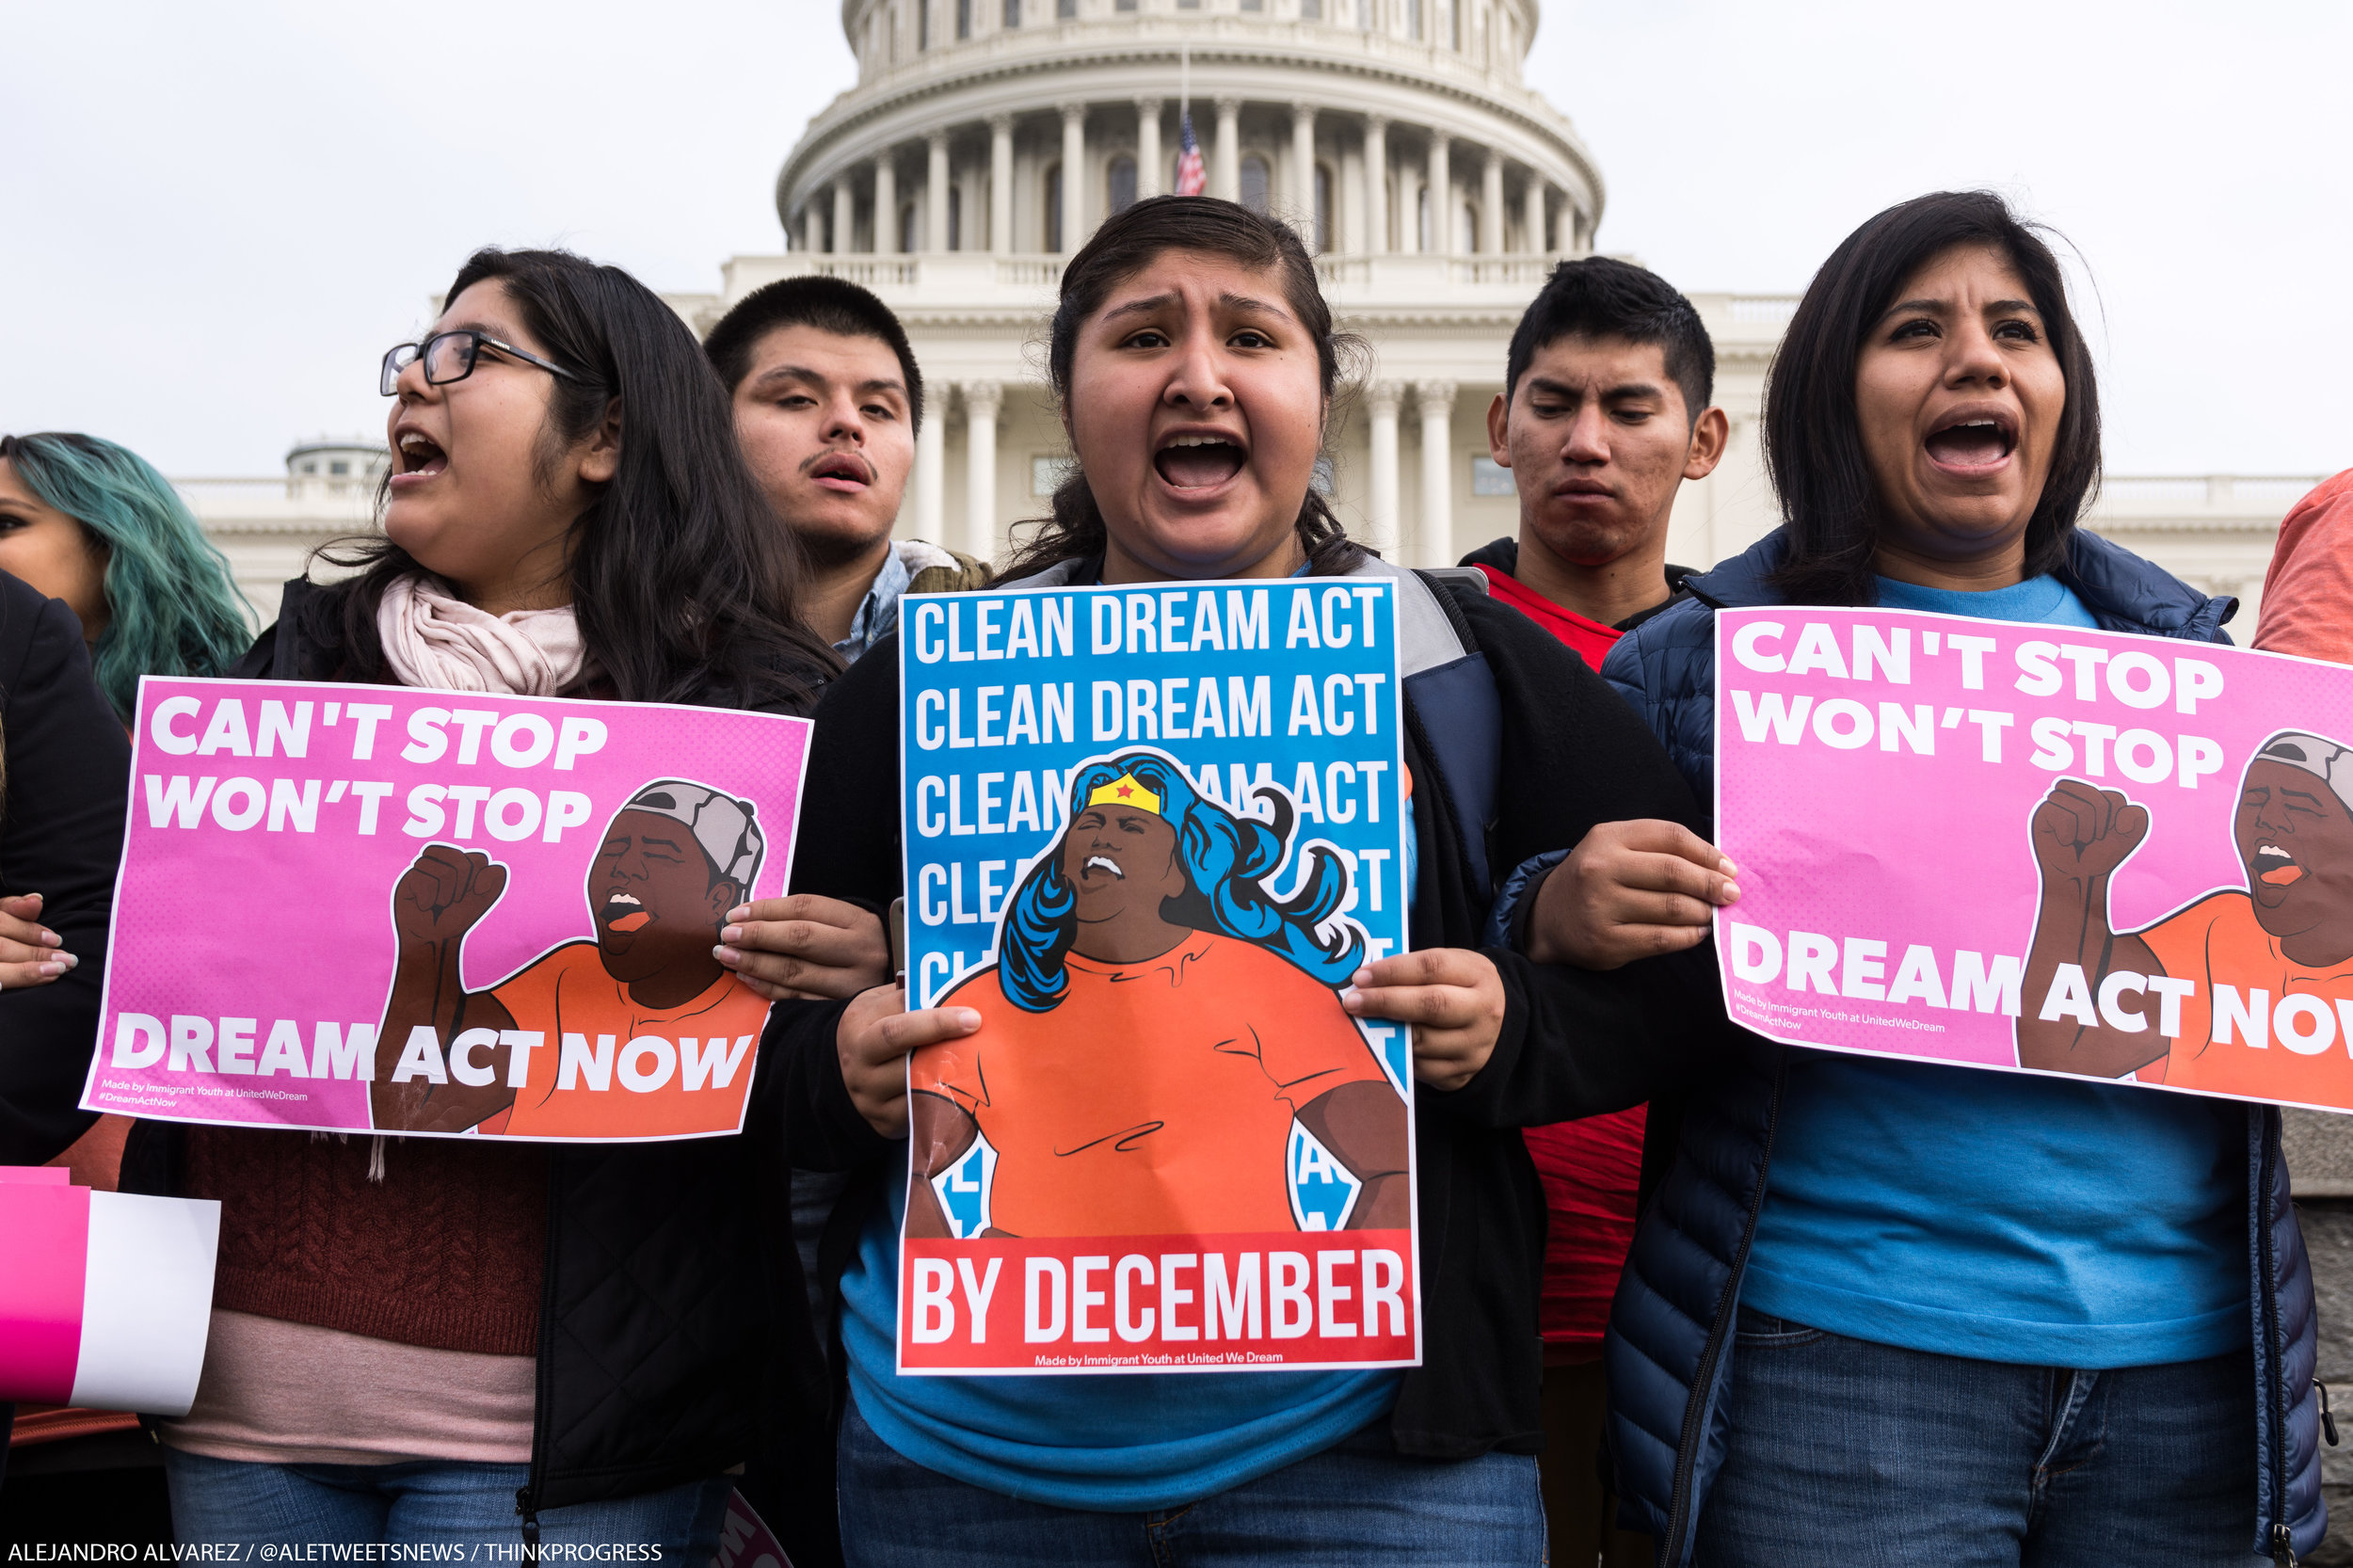 DREAMers marched to the west front of the Capitol, where they demanded Ryan put the DREAM Act to a vote.